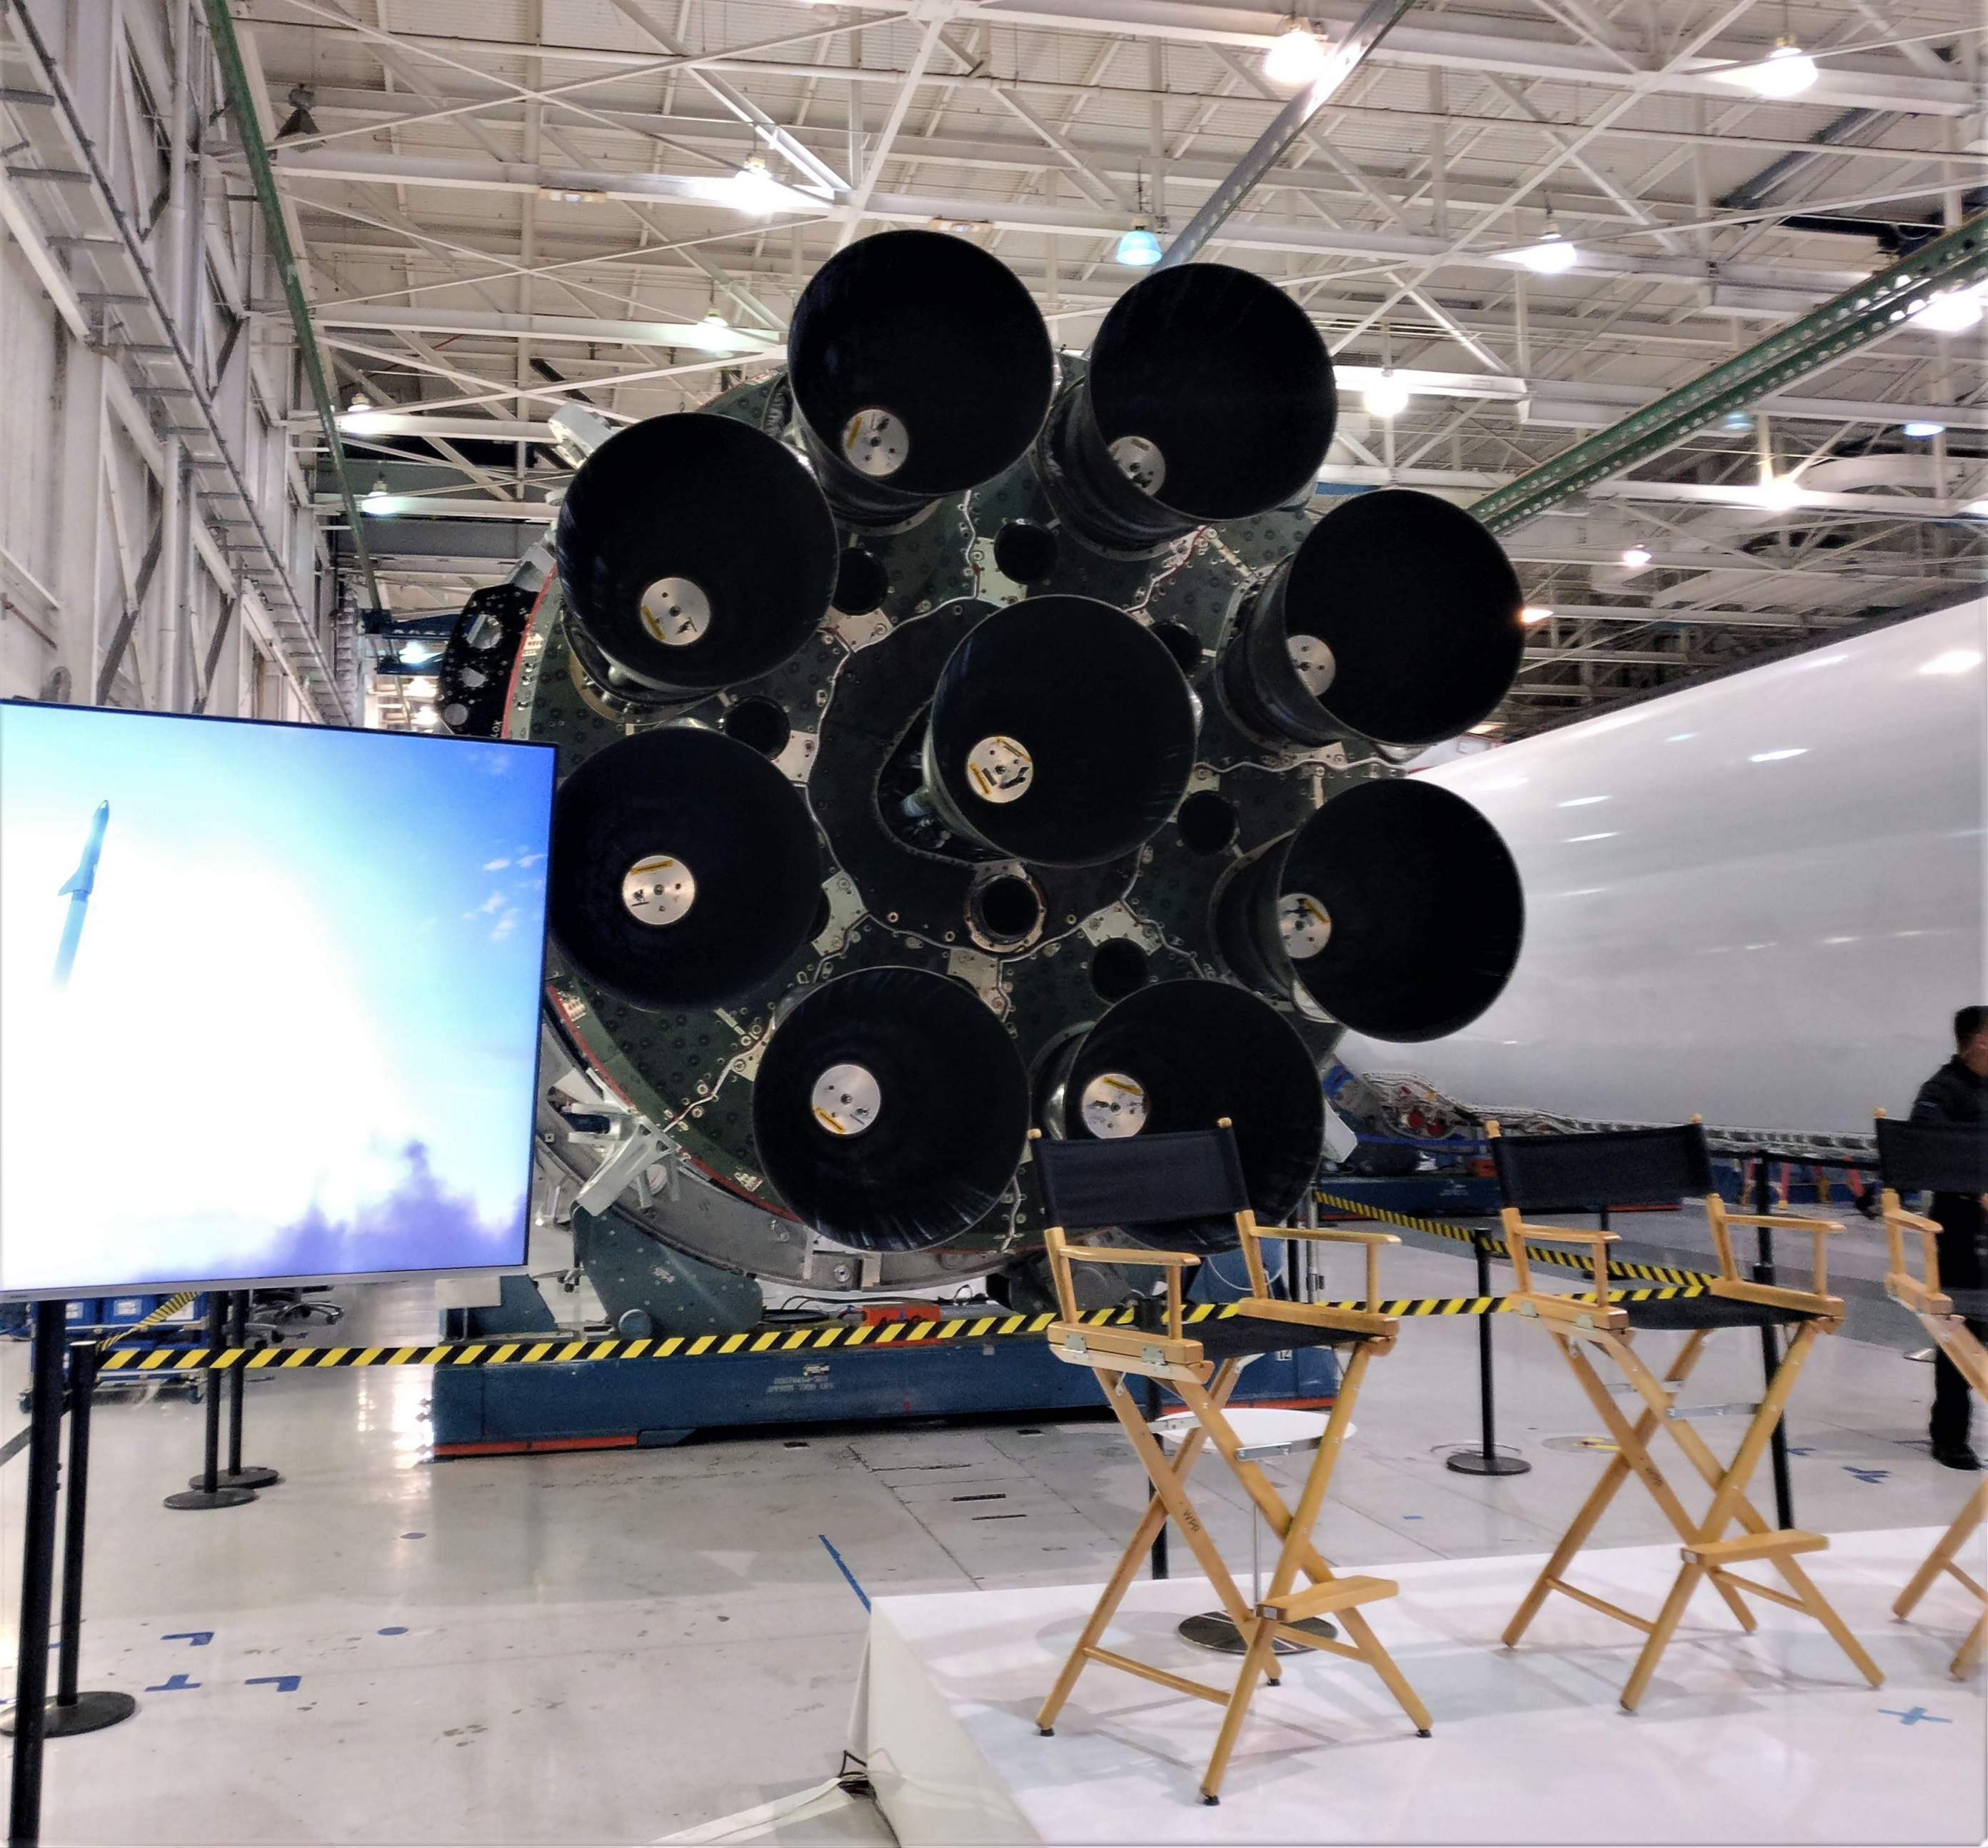 Falcon 9 octaweb and BFR event (Eric Ralph) 1(c)